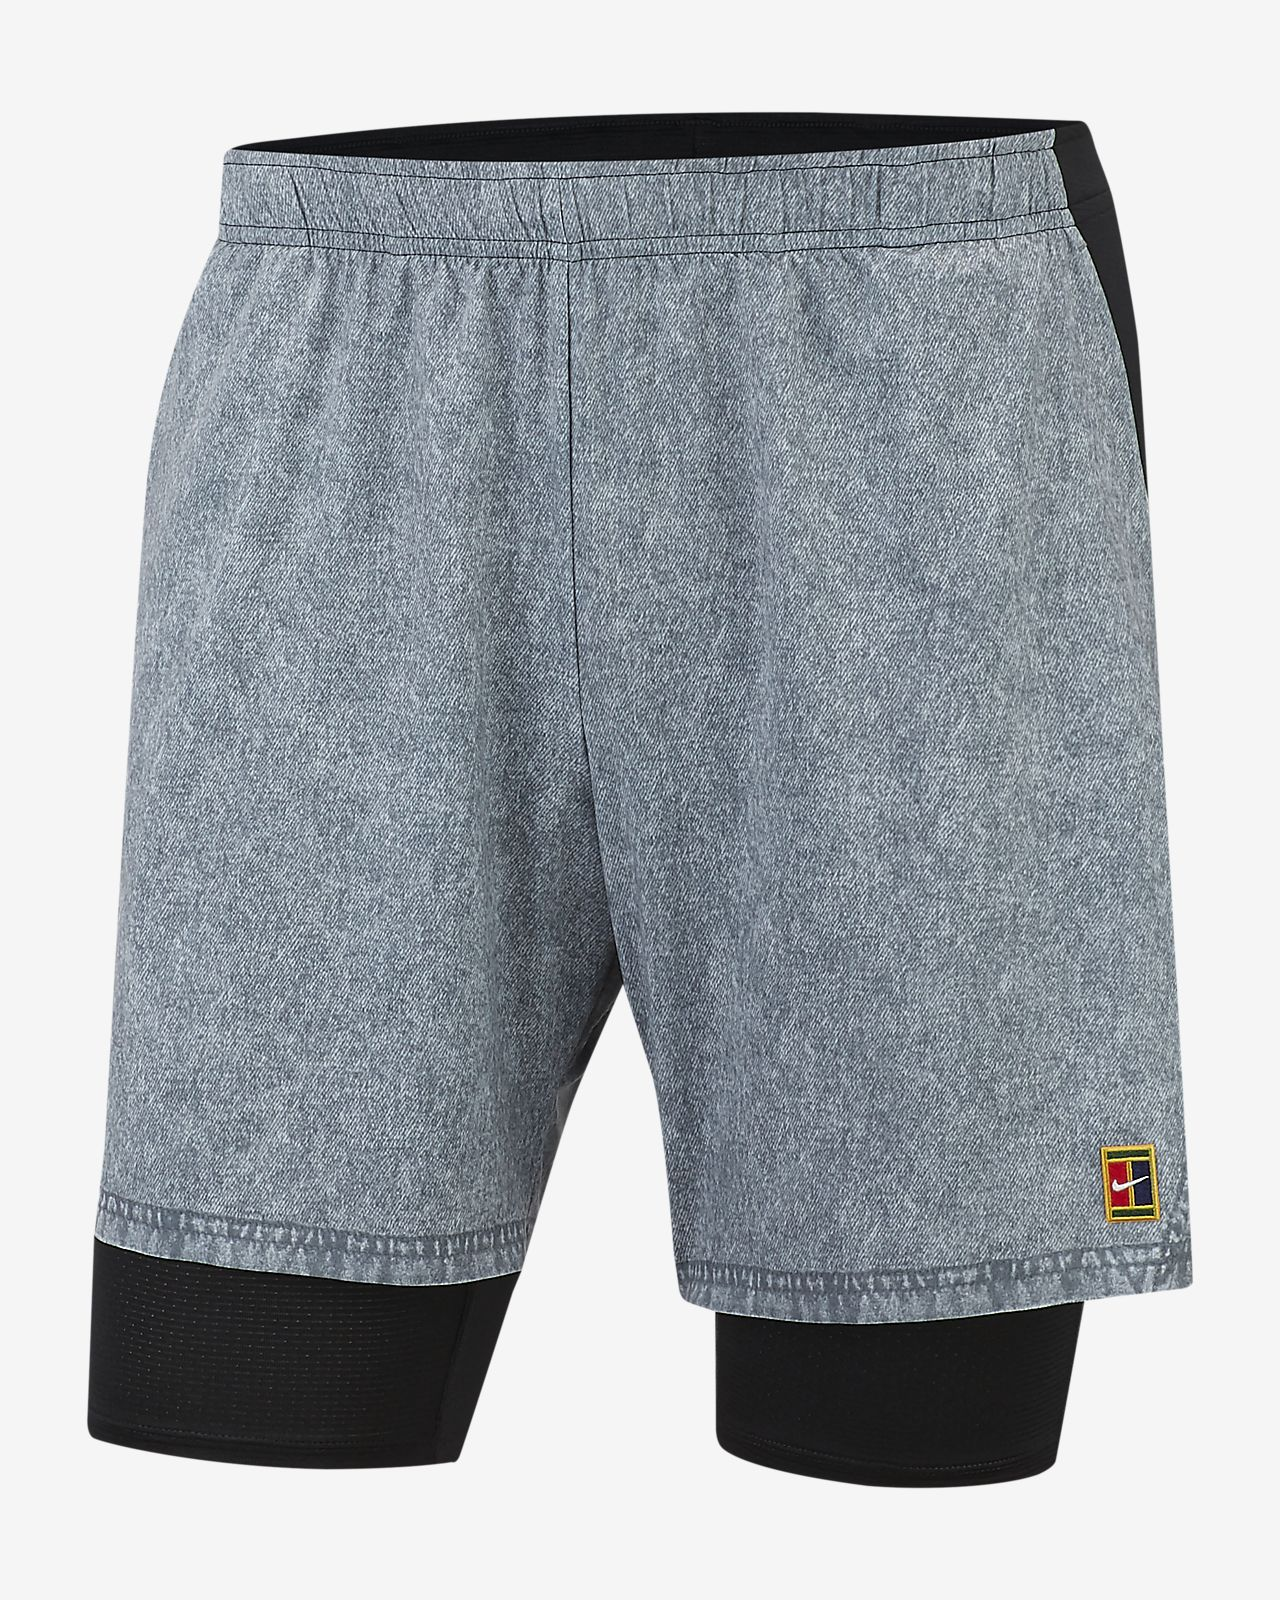 NikeCourt Flex Ace Men's Printed Tennis Shorts